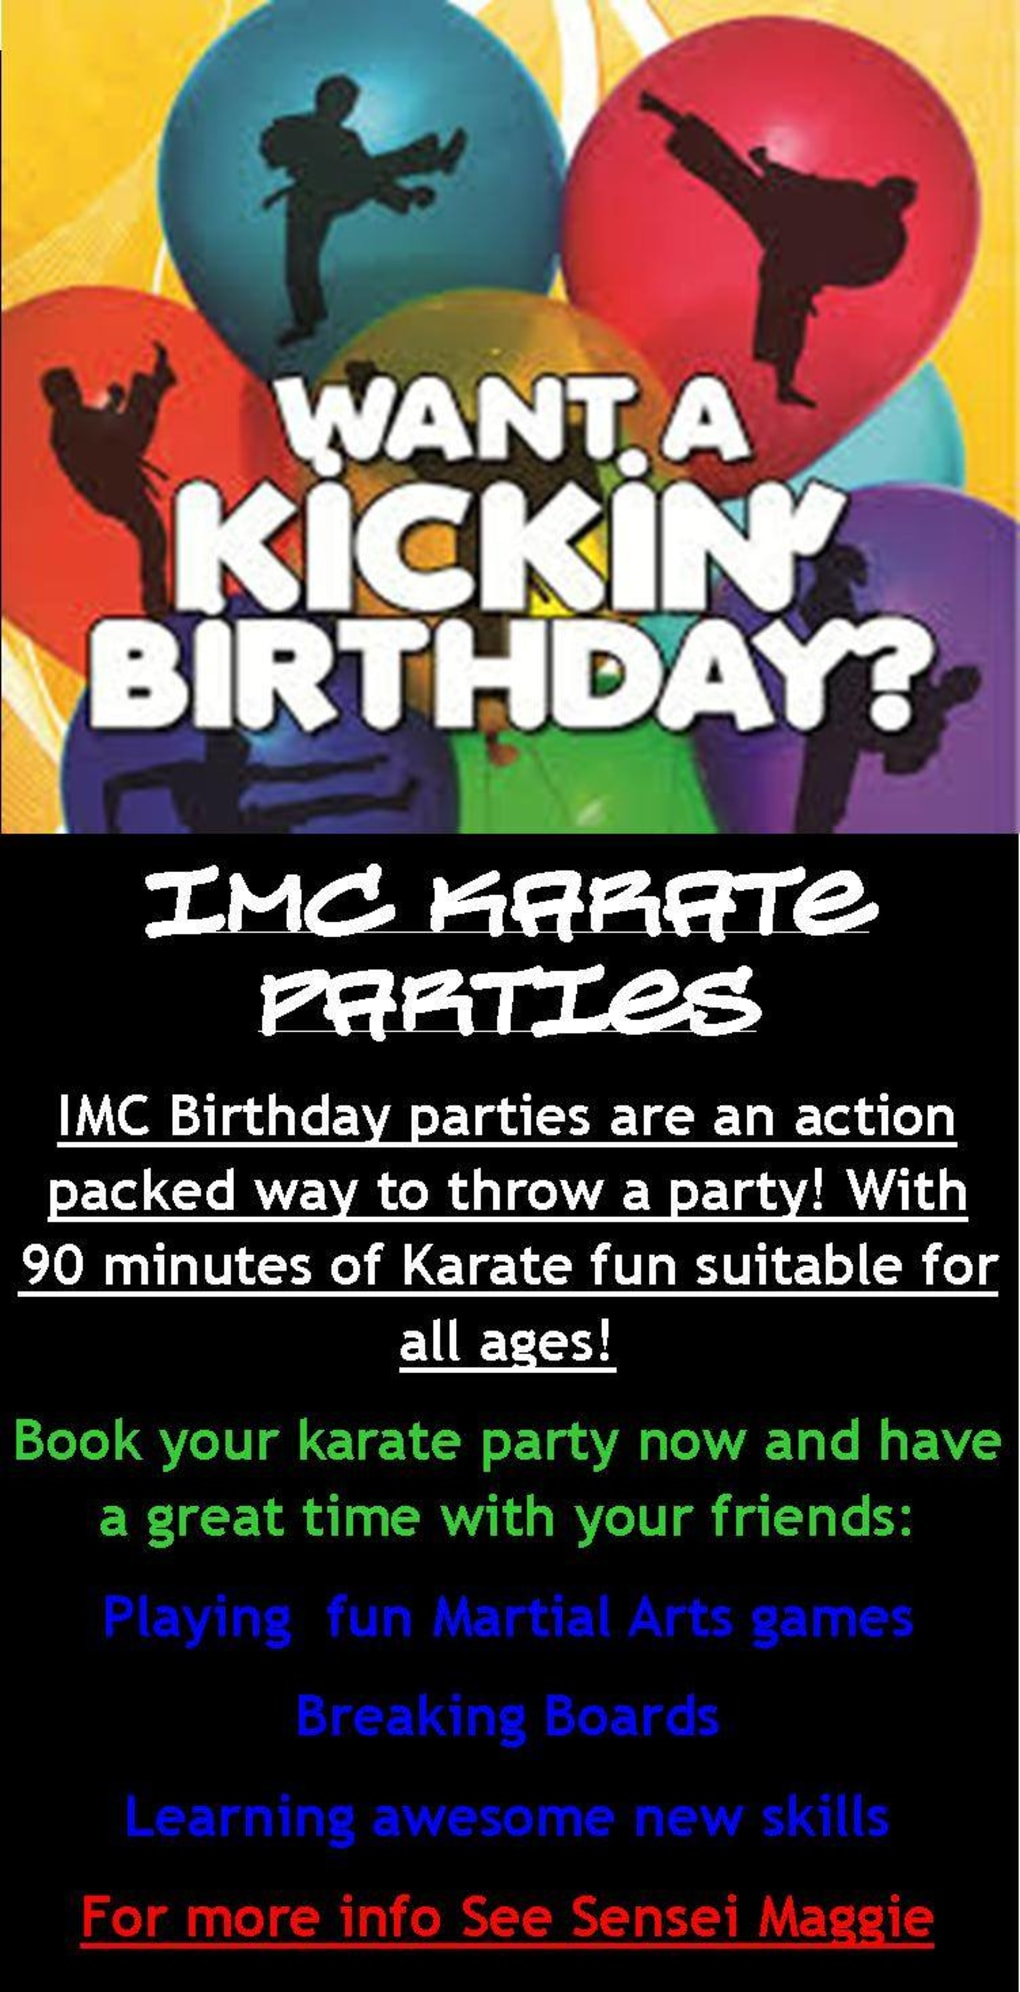 Kids Karate in Prestons and Liverpool - IMC Liverpool - Karate Birthday Parties